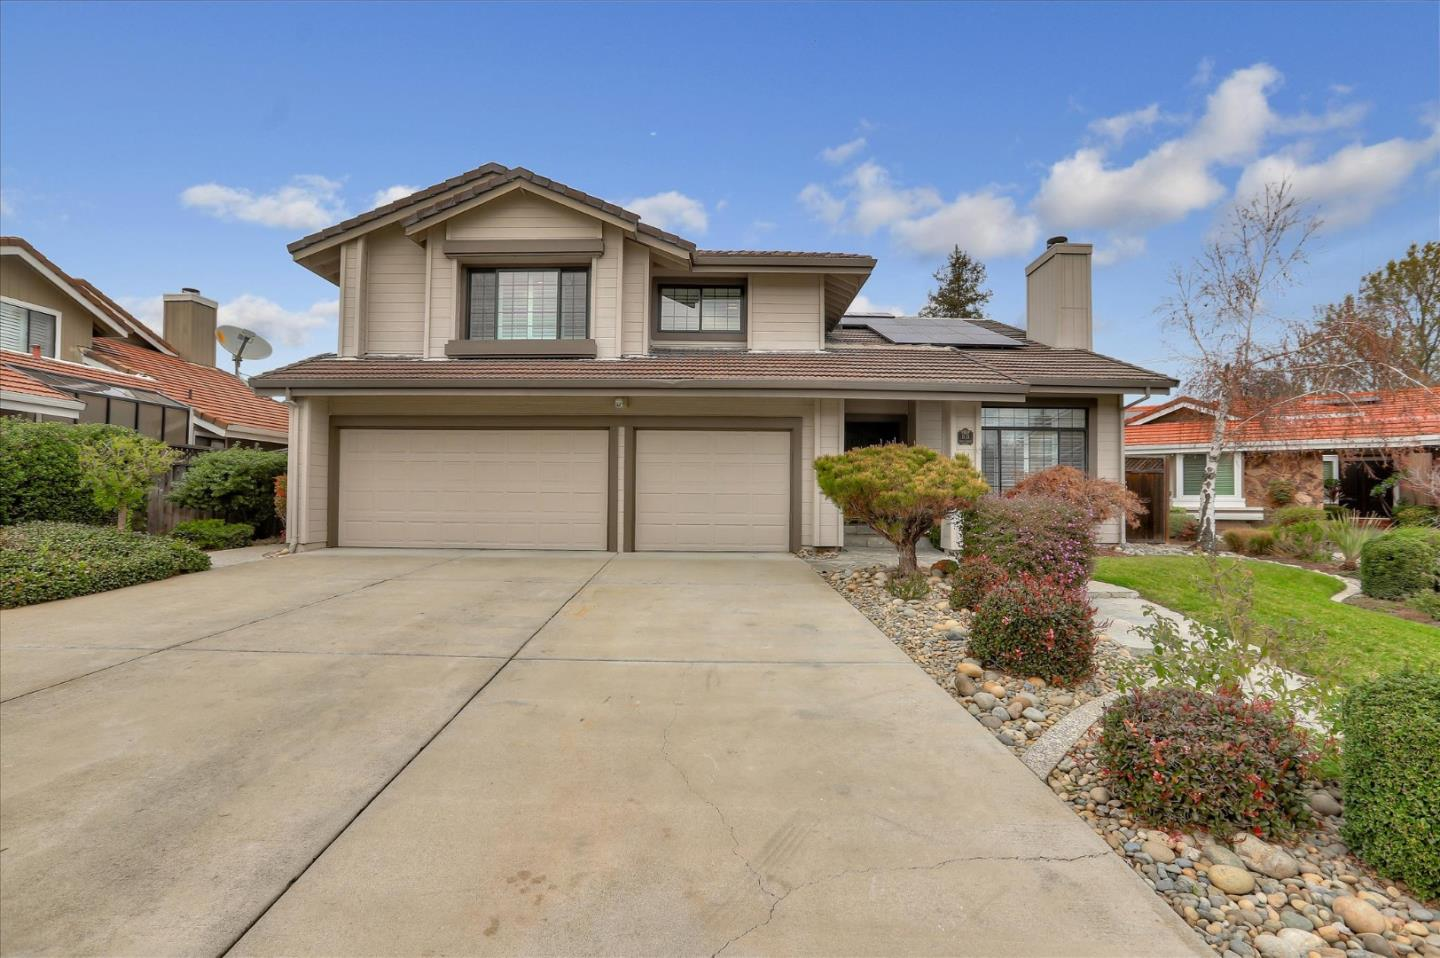 This gorgeous turn-key home sits on a cul-de-sac, offers an open floor plan, soaring ceilings, and comfortable natural lighting.  Ideal for family and entertaining, there is a formal living, dining, separate family room, gourmet kitchen with breakfast bar, kitchen nook with atrium windows, stainless steel appliances, double ovens and trash compactor.  Updated with attention to detail incorporating smart/WiFi lighting, recessed lights, plantation shutters, security system with cameras, pelican water filter, newer appliances, and surround sound speakers in the family room. On the main level, a full bathroom and bedroom and on the second floor, a spacious master suite retreat with fireplace, walk-in closet with organizers, jetted tub, and double sinks. Professionally landscaped, the front and back yards are low maintenance and solar paneling keep electric bills low.  Additional amenities include a heated pool, hot tub, attached 3-car-garage, extra storage sheds, and top-rated schools!